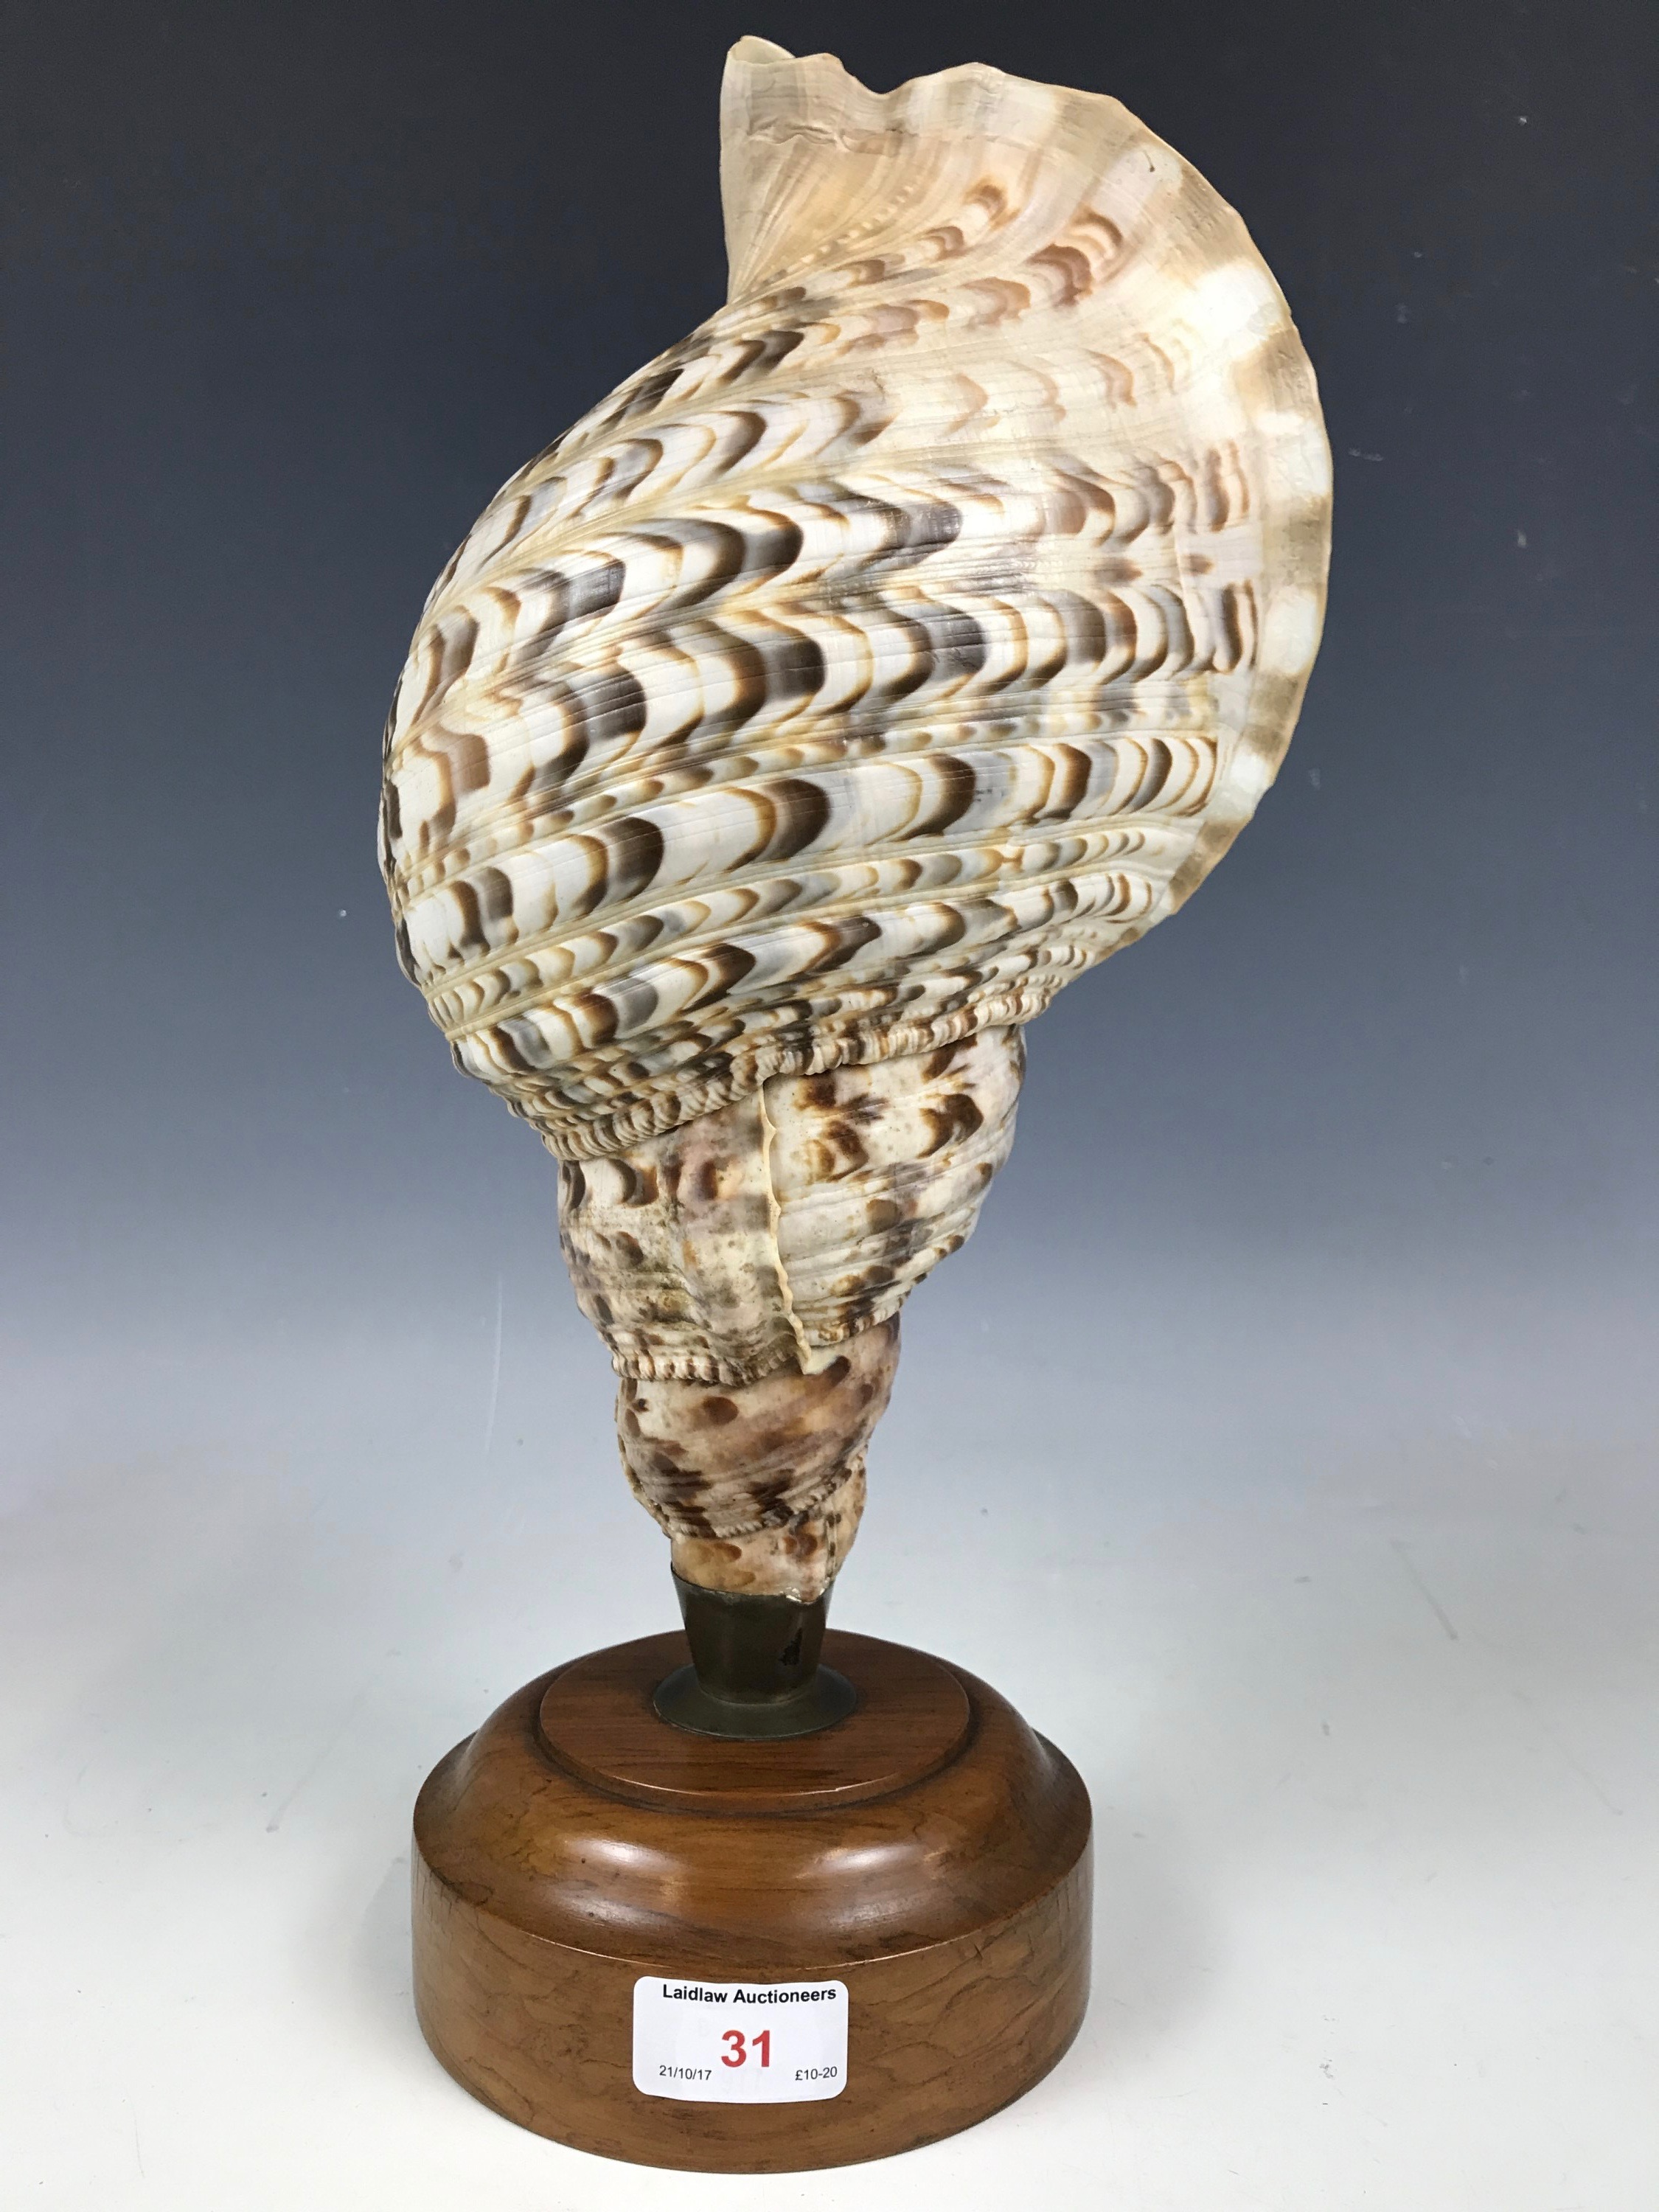 Lot 31 - A vintage conch shell lamp base